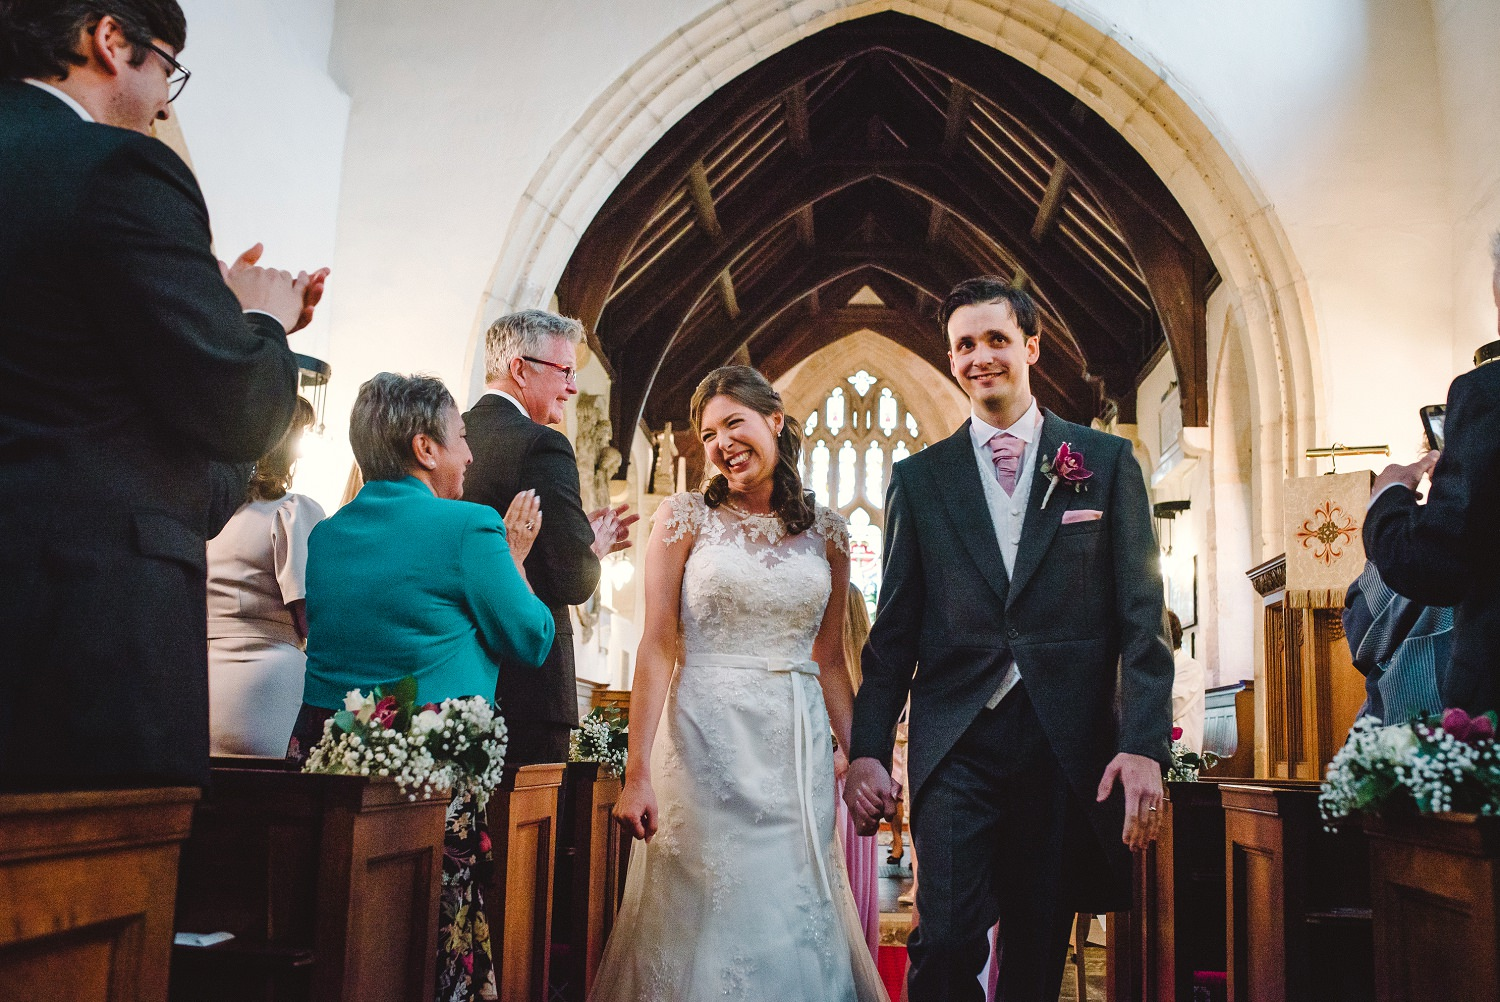 helen_will_dumbleton_wedding_0026.jpg